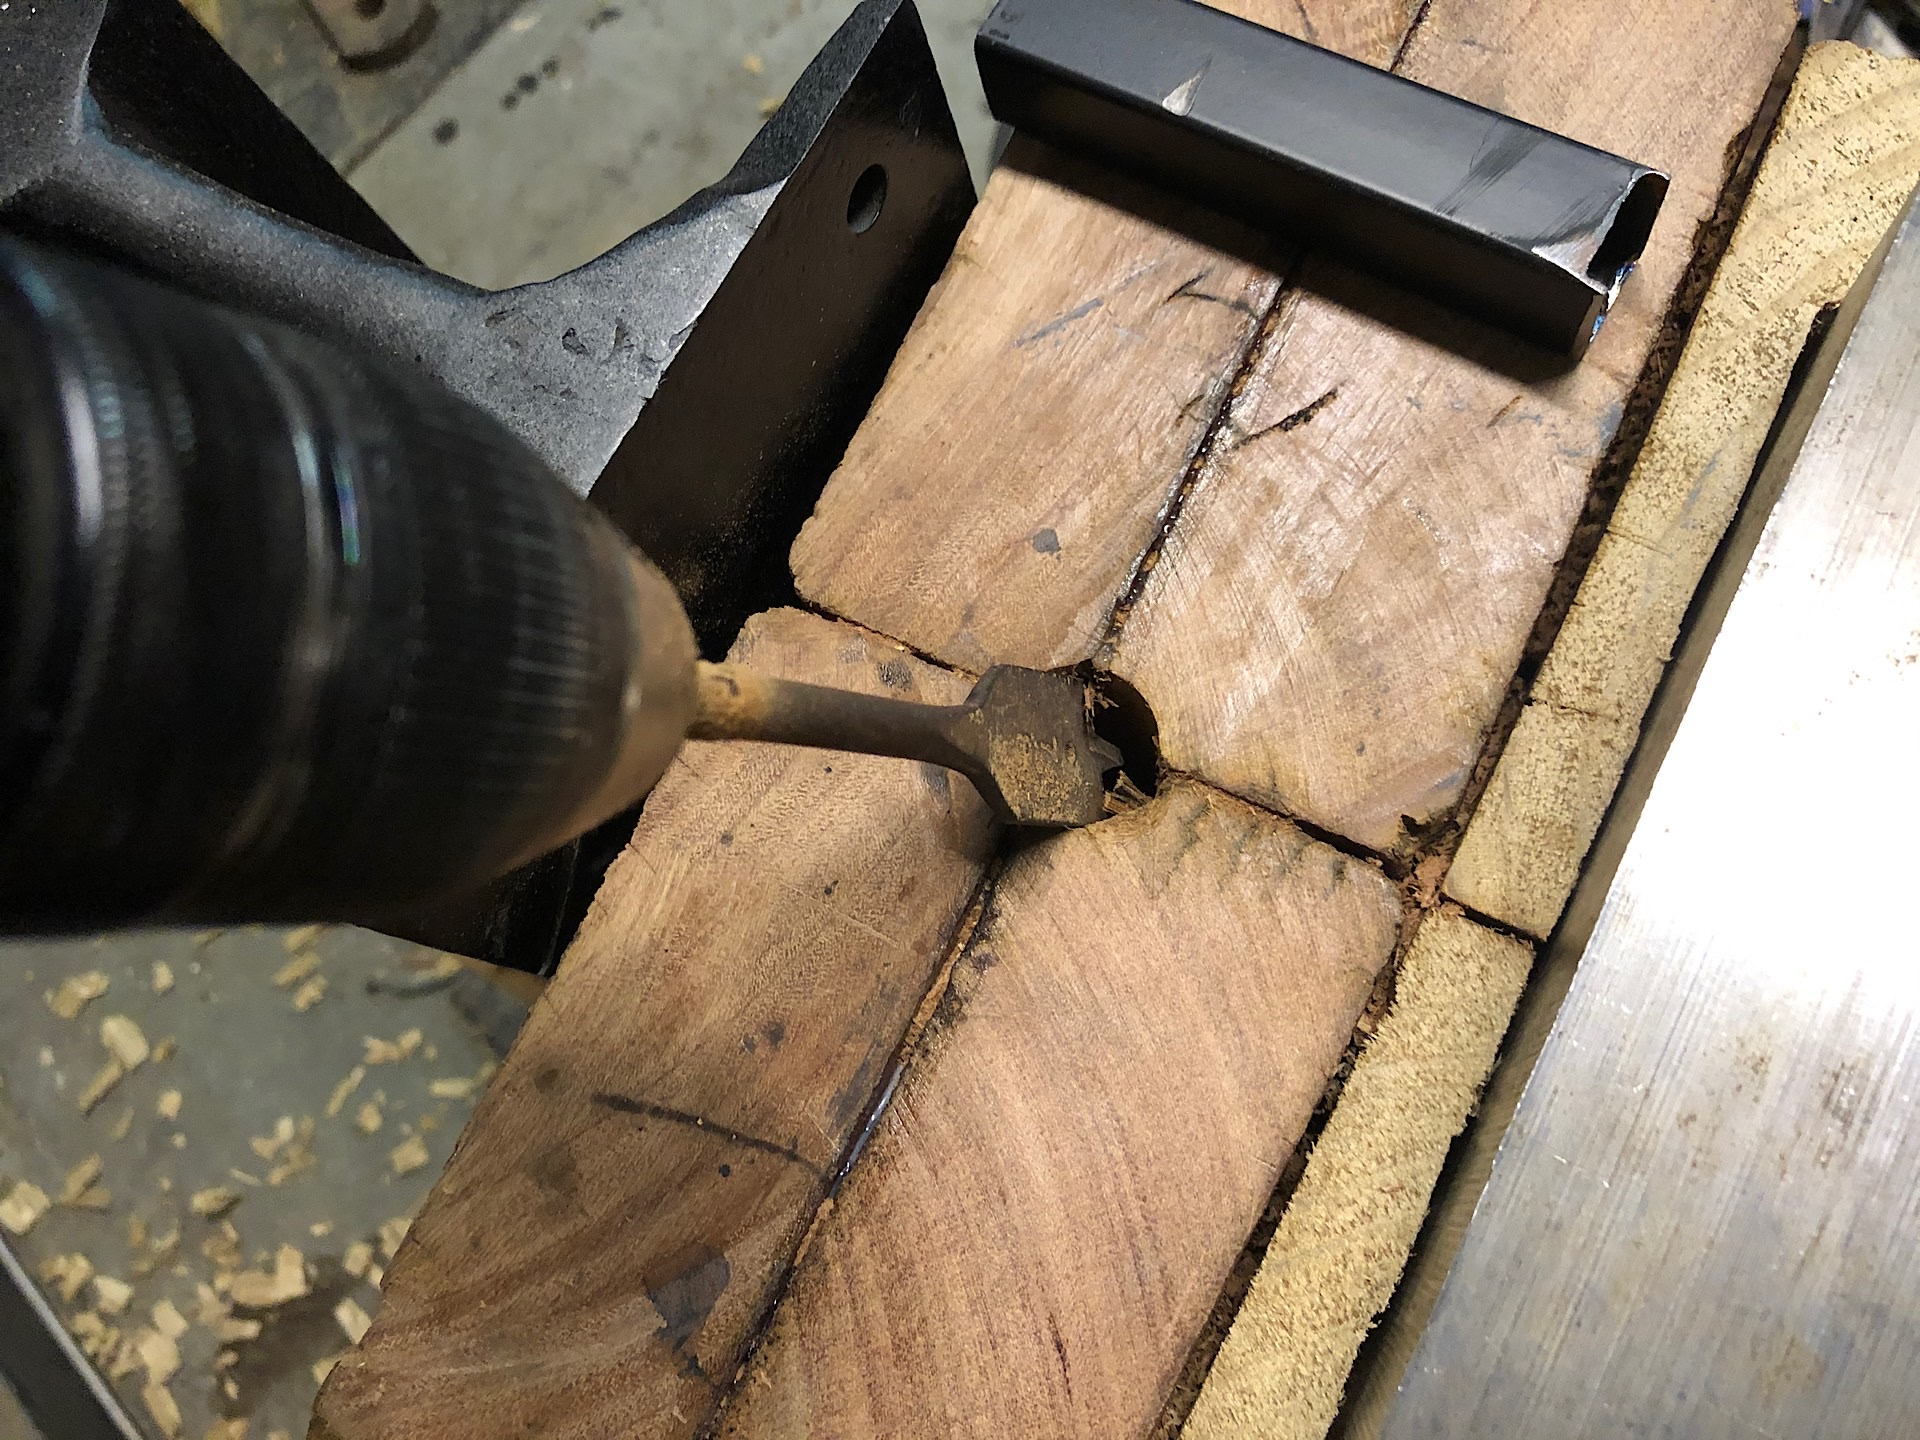 Drilling a hardy hole